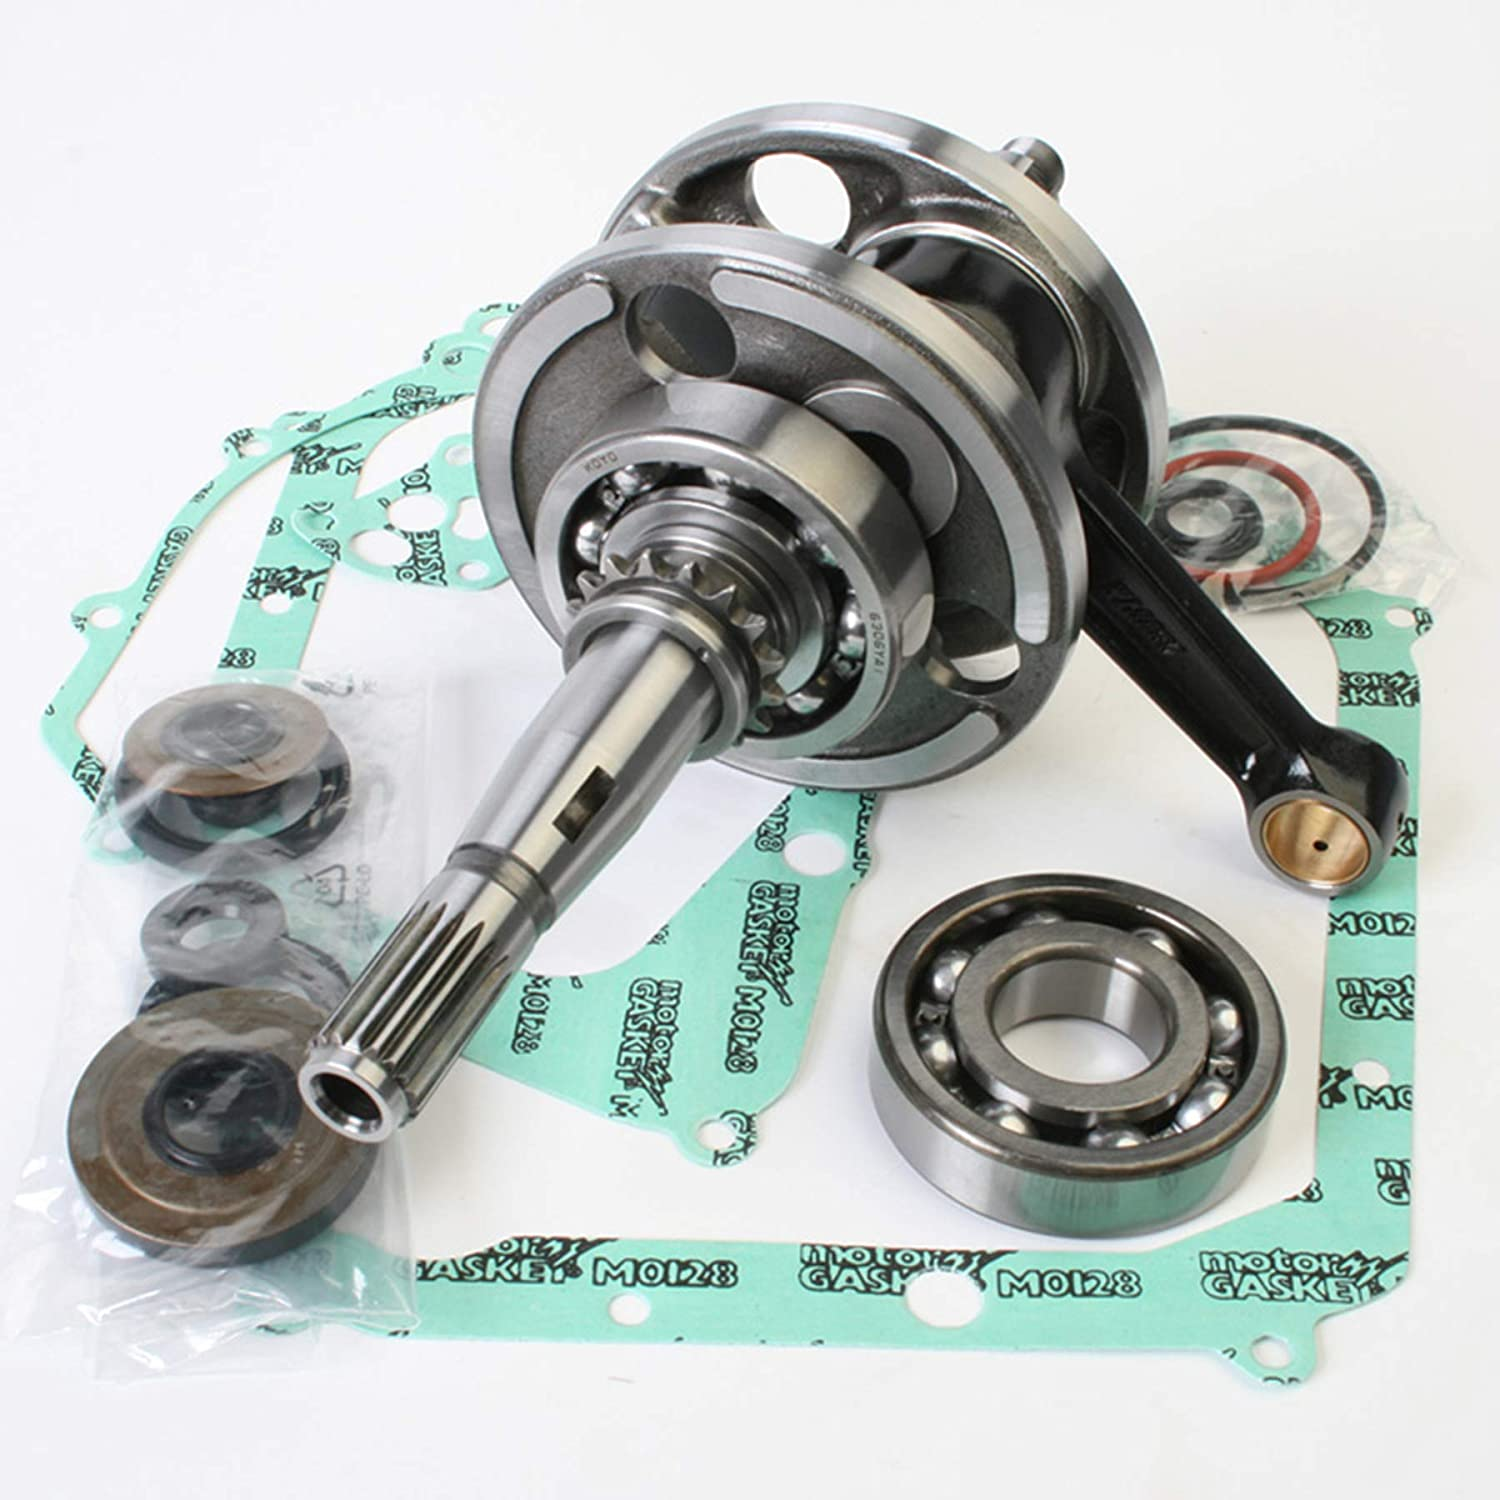 Wiseco WPC117 Crankshaft Assembly for Kawasaki//Suzuki